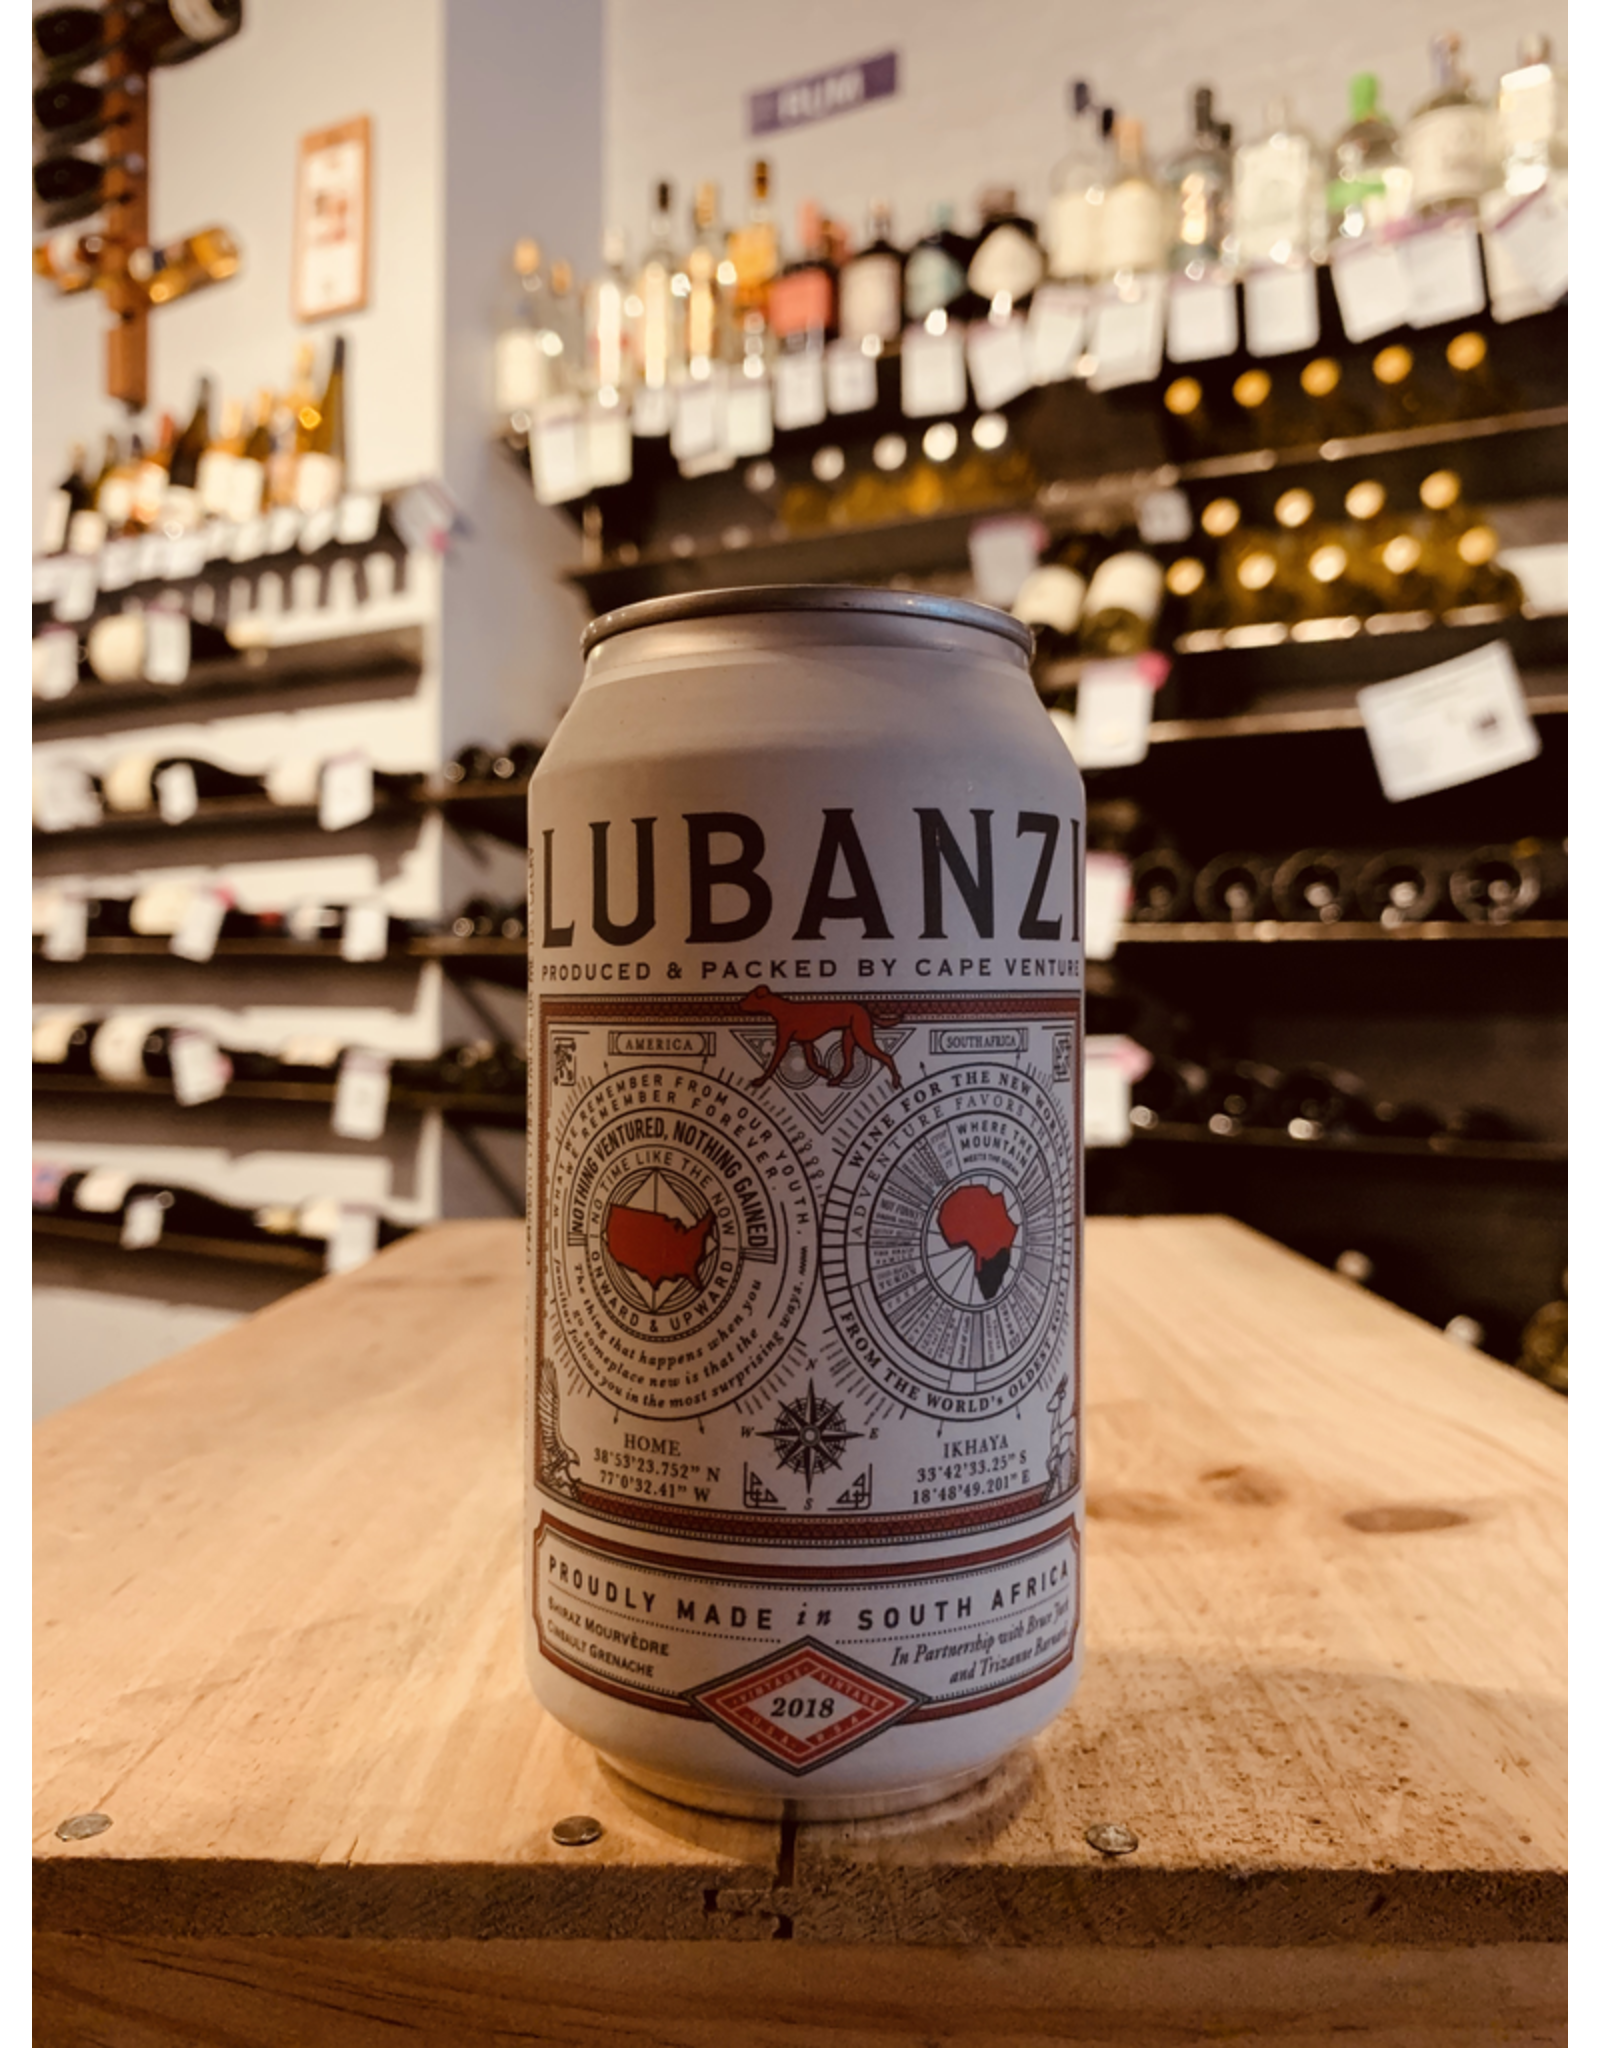 South Africa-Western Cape 2018 Lubanzi Red Blend - Swartland, Western Cape, South Africa (375ml can)